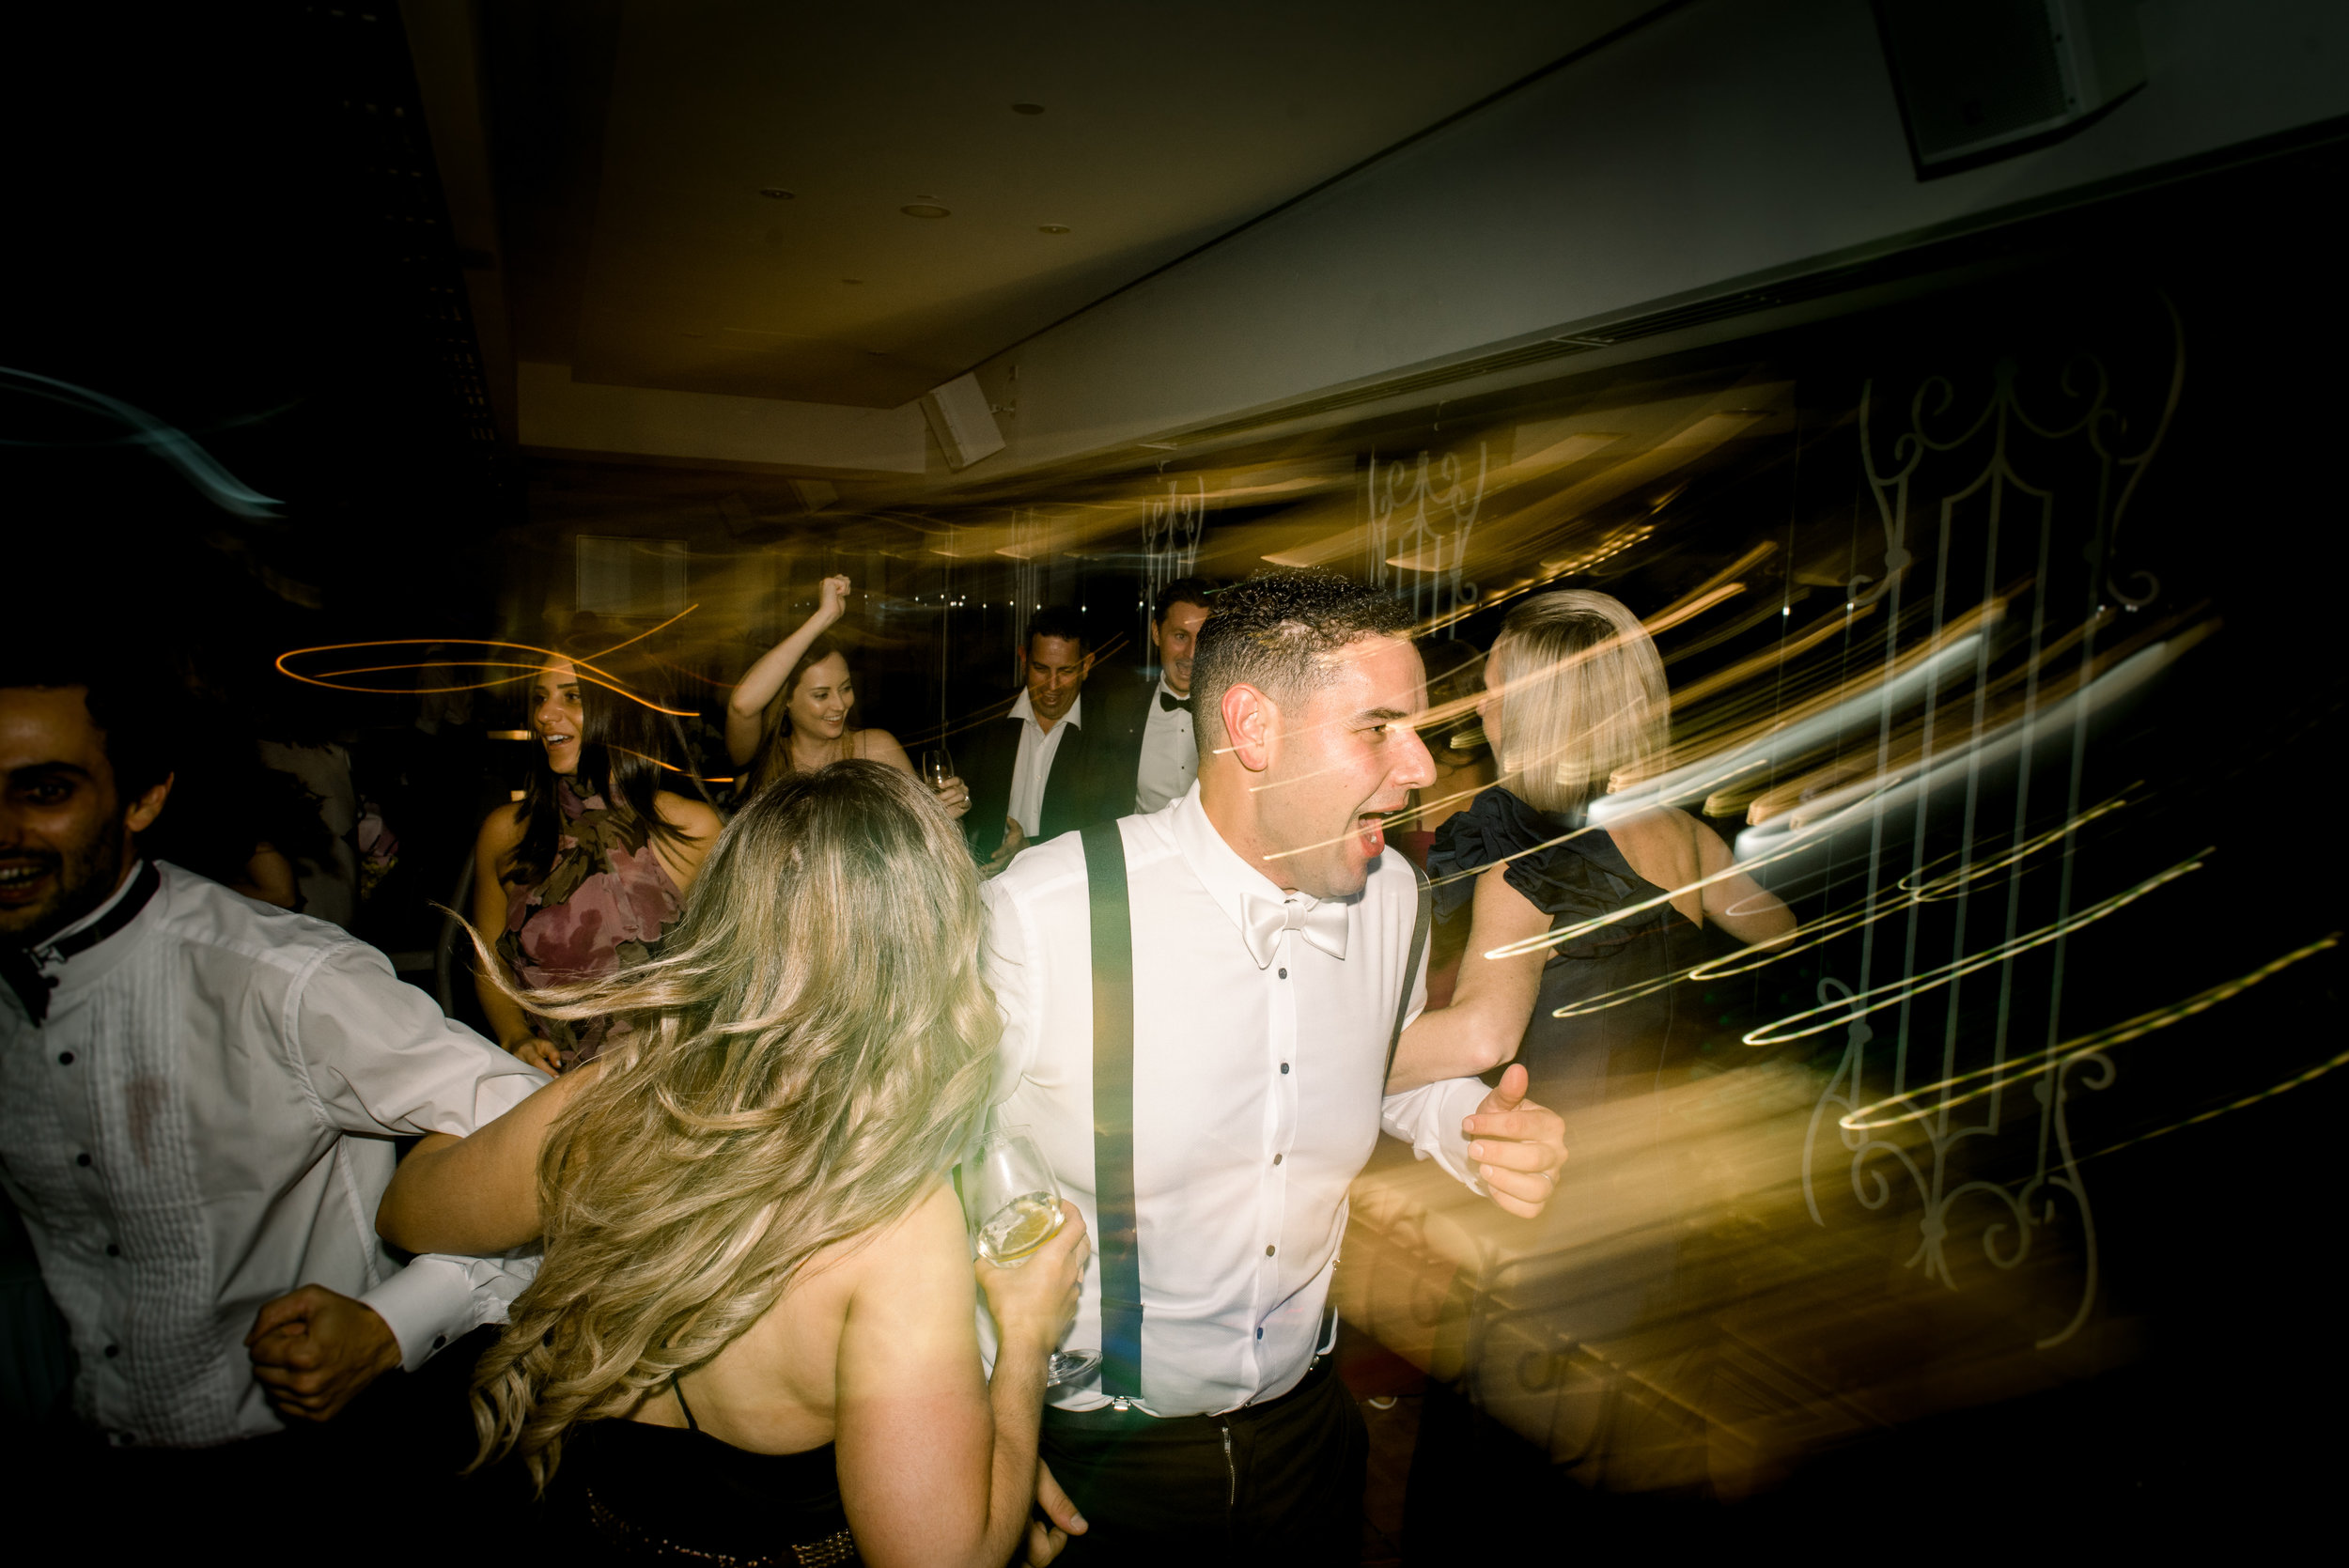 black-bird-brisbane-wedding-photography-film-photography-beautiful-reception-dance-candid-tweed-coast-wedding-201.jpg